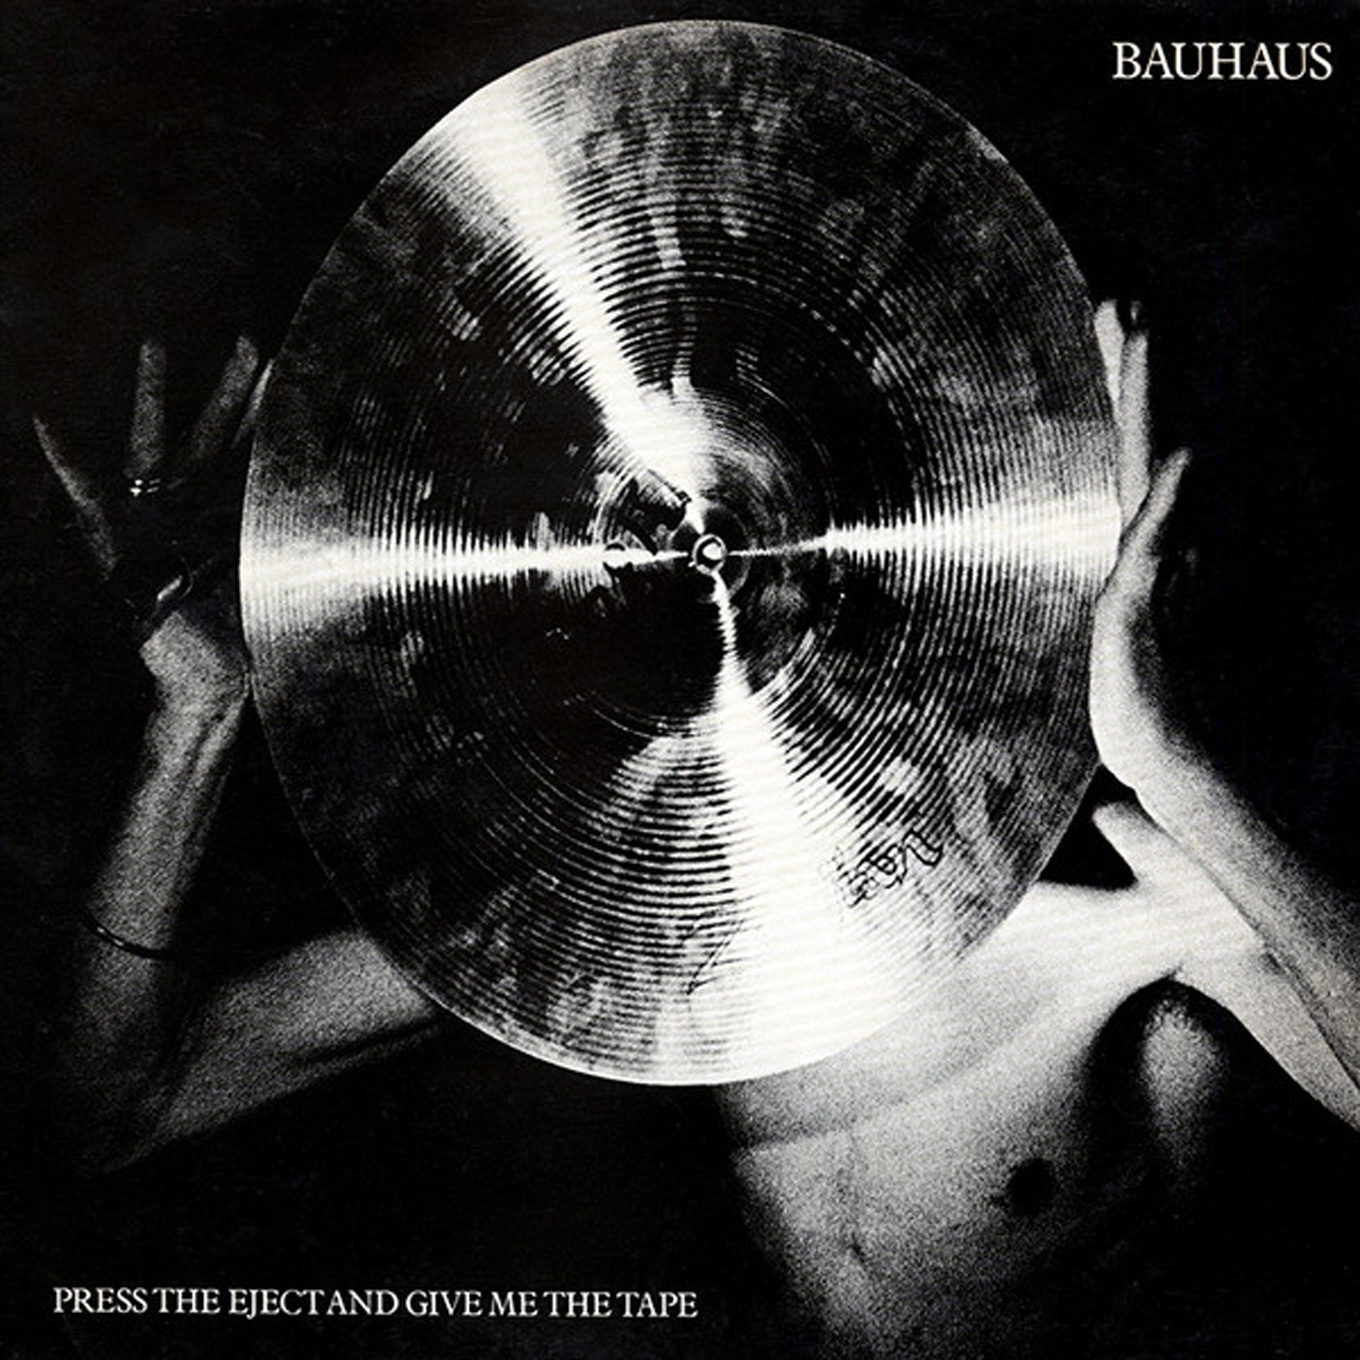 Bauhaus - Press the Eject and Give Me the Tape (Beggars Banquet, 1982).